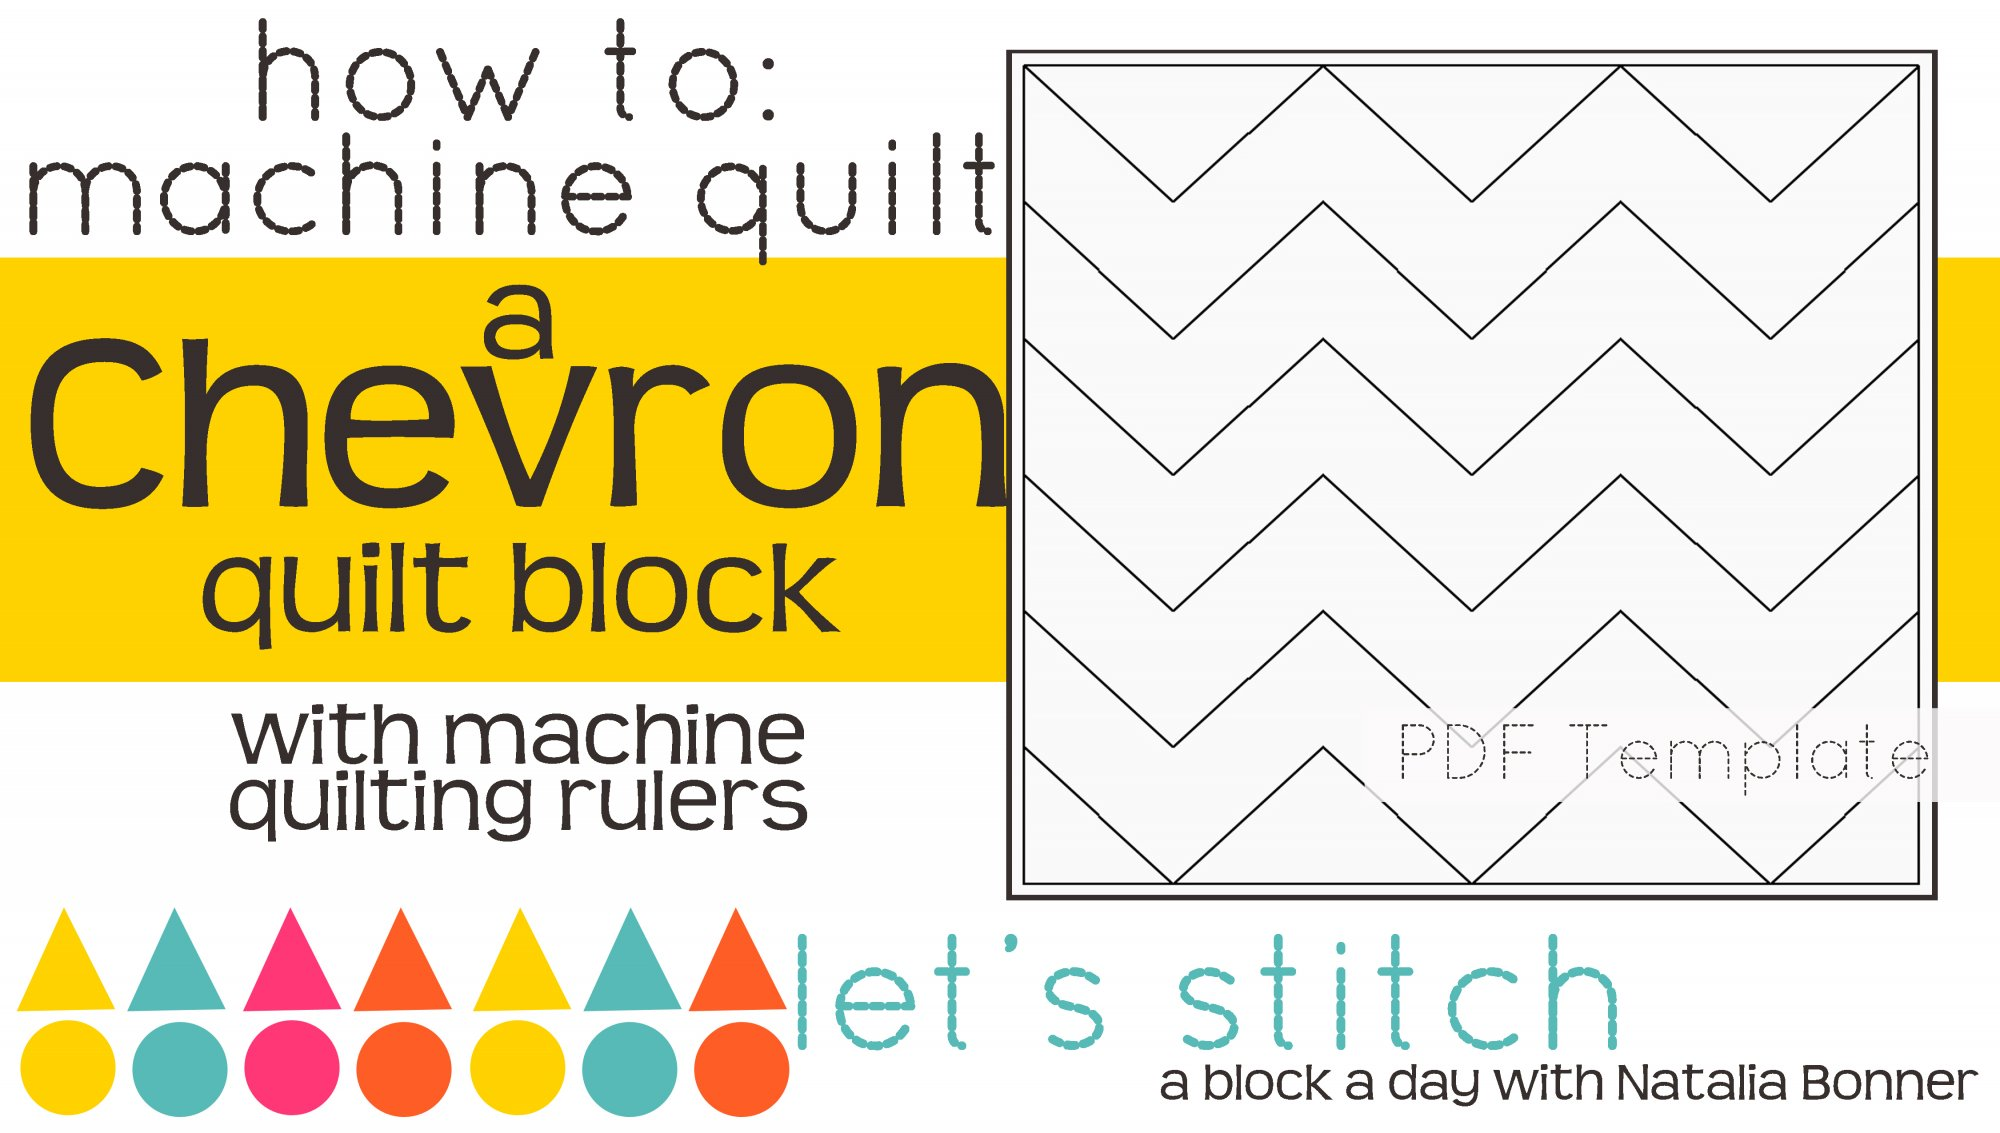 Let's Stitch - A Block a Day With Natalia Bonner - PDF - Chevron